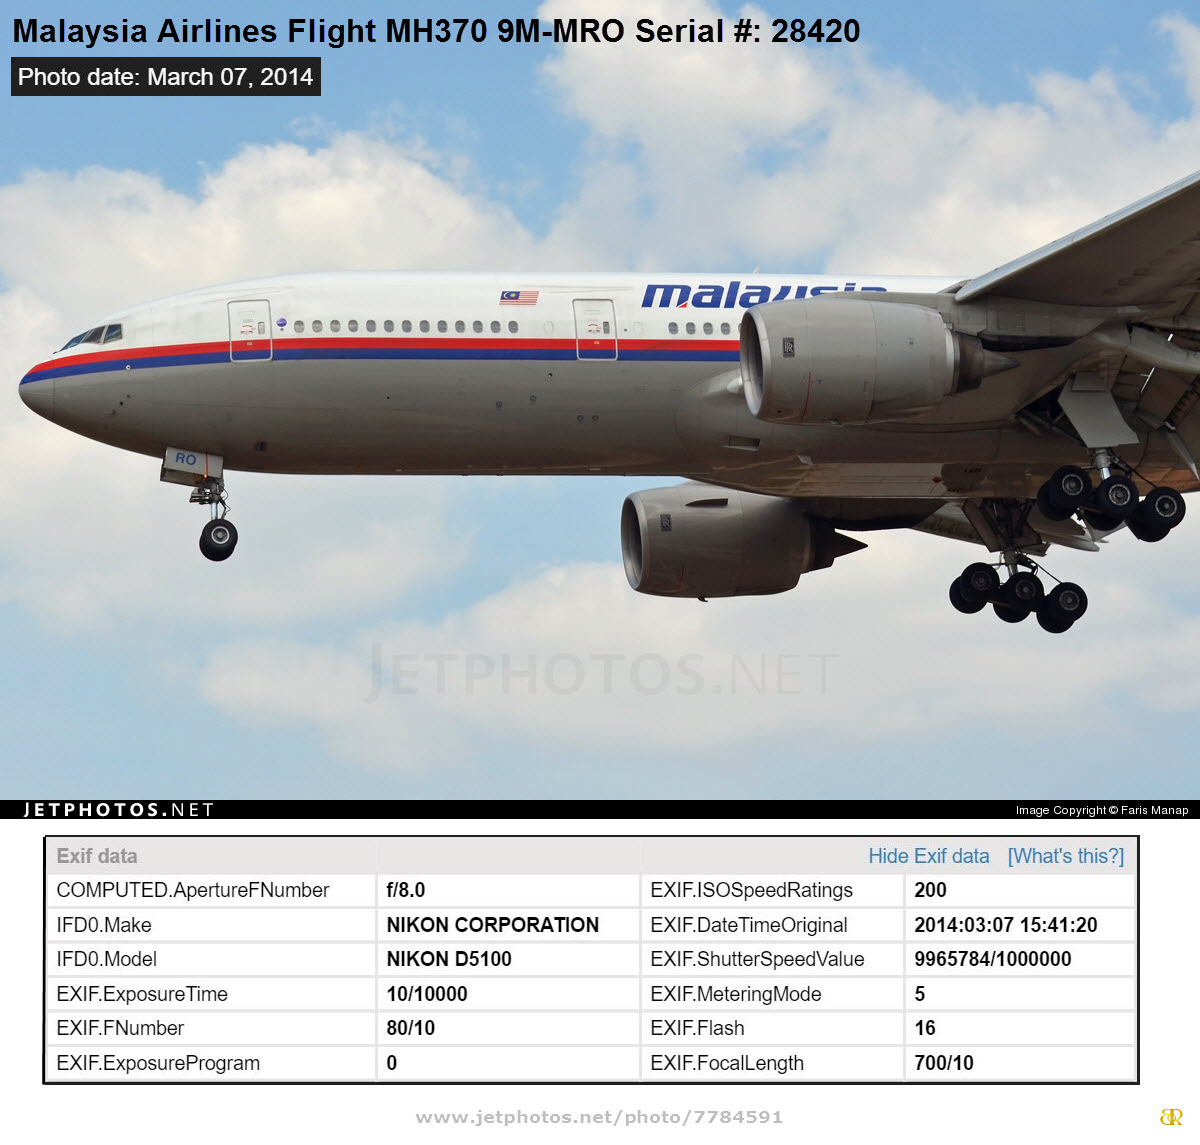 MH370 9M-MRO Last Photo - Photo date March 07, 2014.jpg